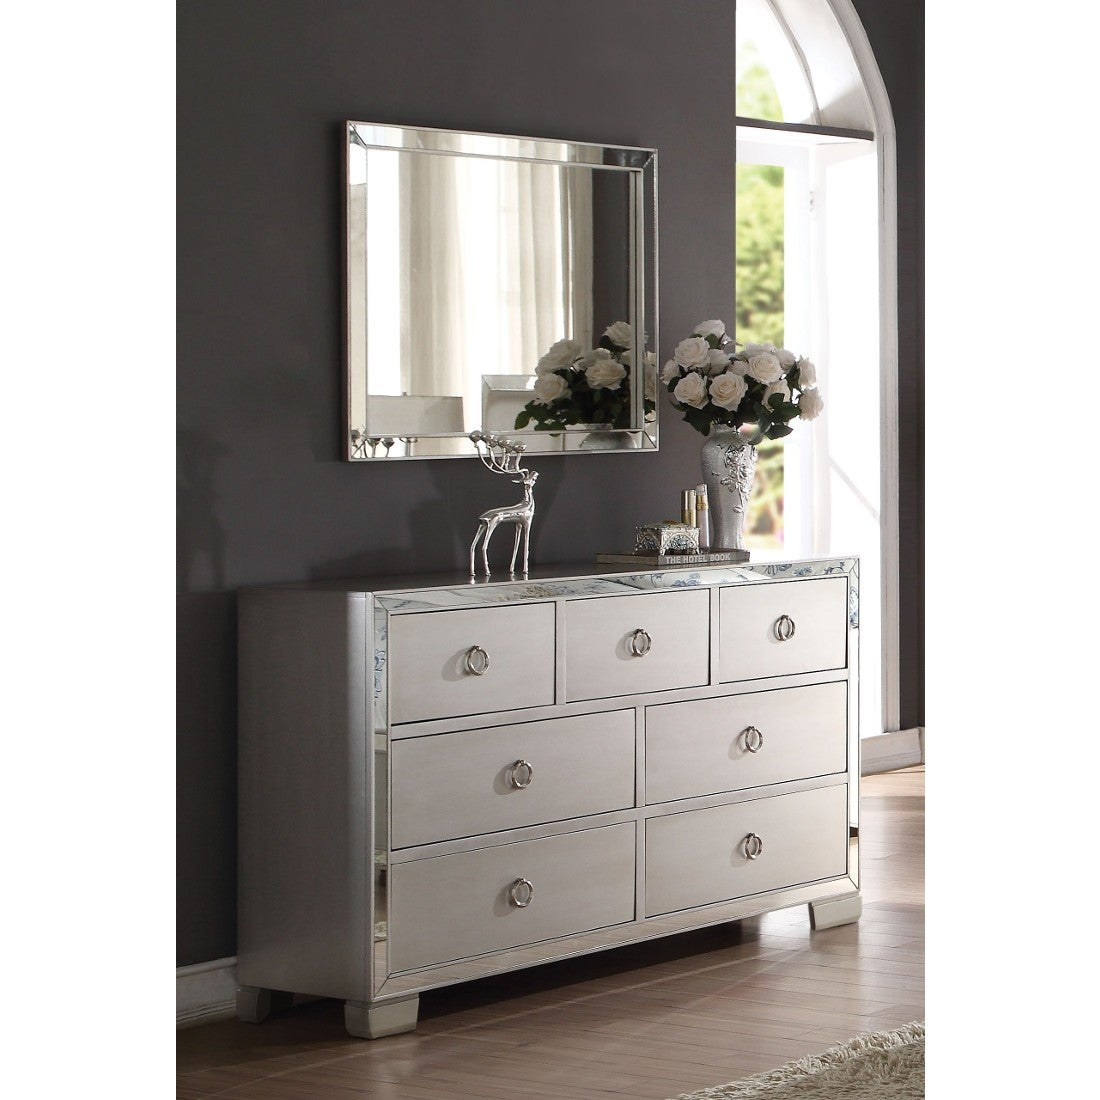 Ventian Platinum Collection dresser